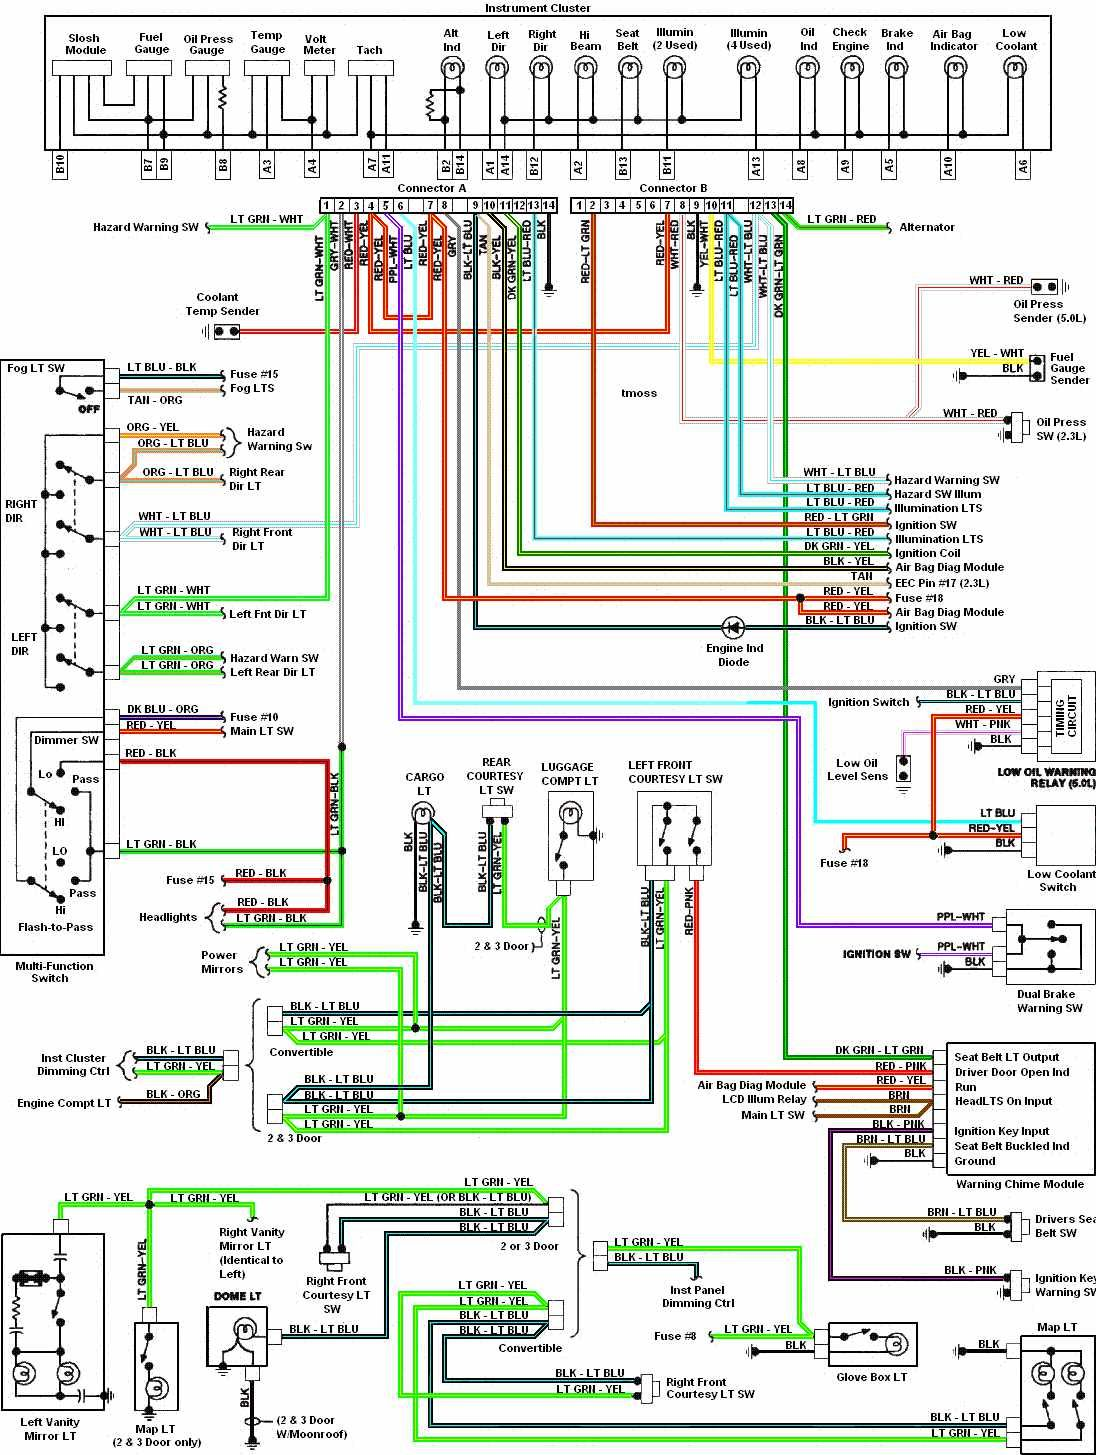 Pc8000 Wiring Diagram 289 1968 Ford Mustang Alternator Database